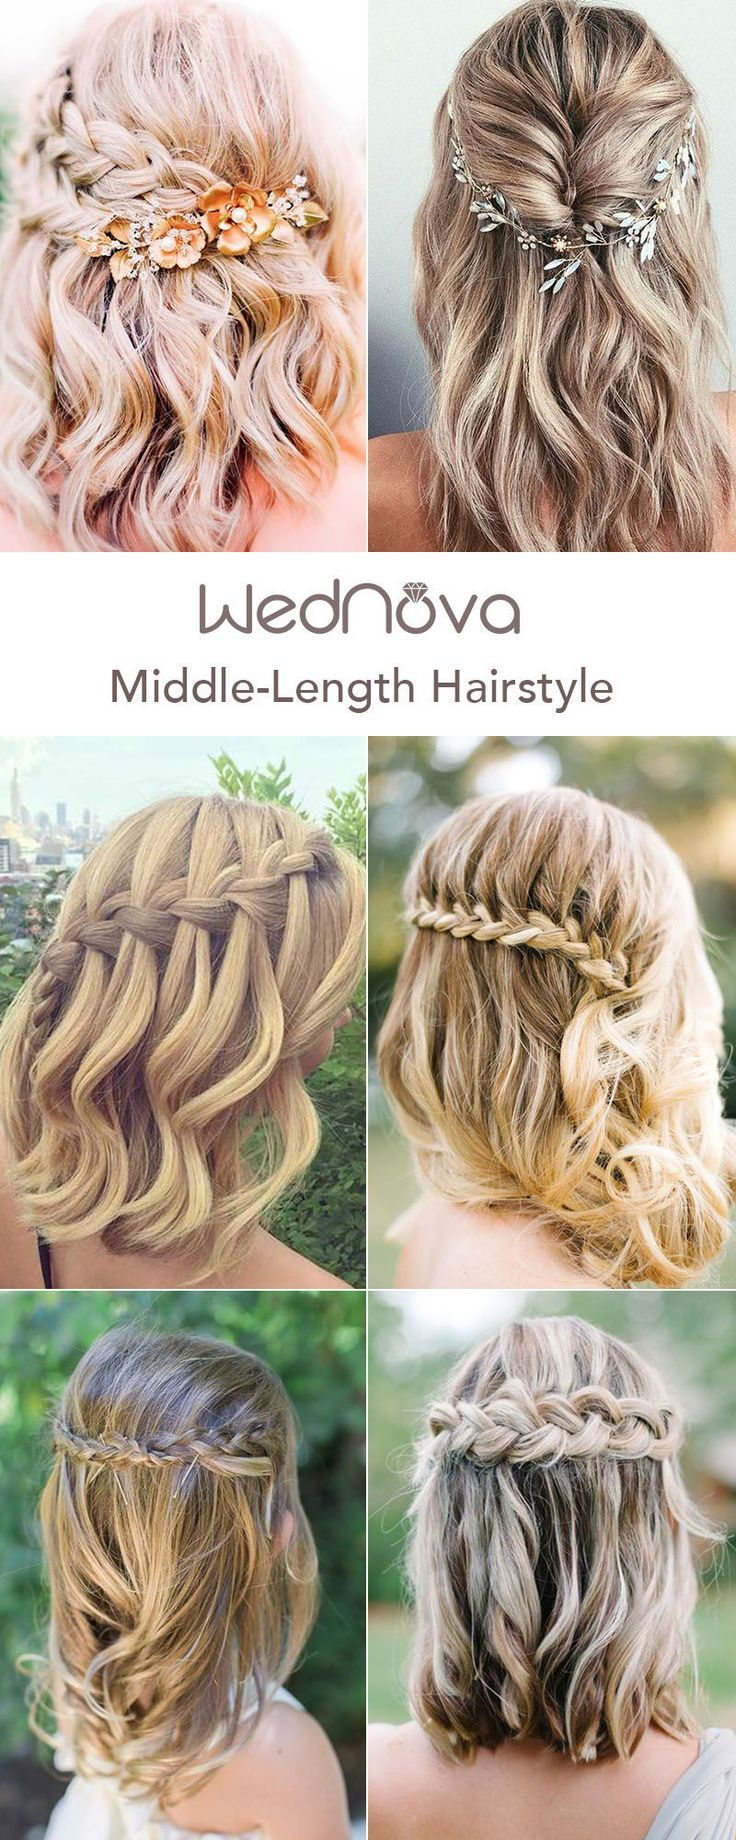 48 easy wedding hairstyles best guide for your bridesmaids